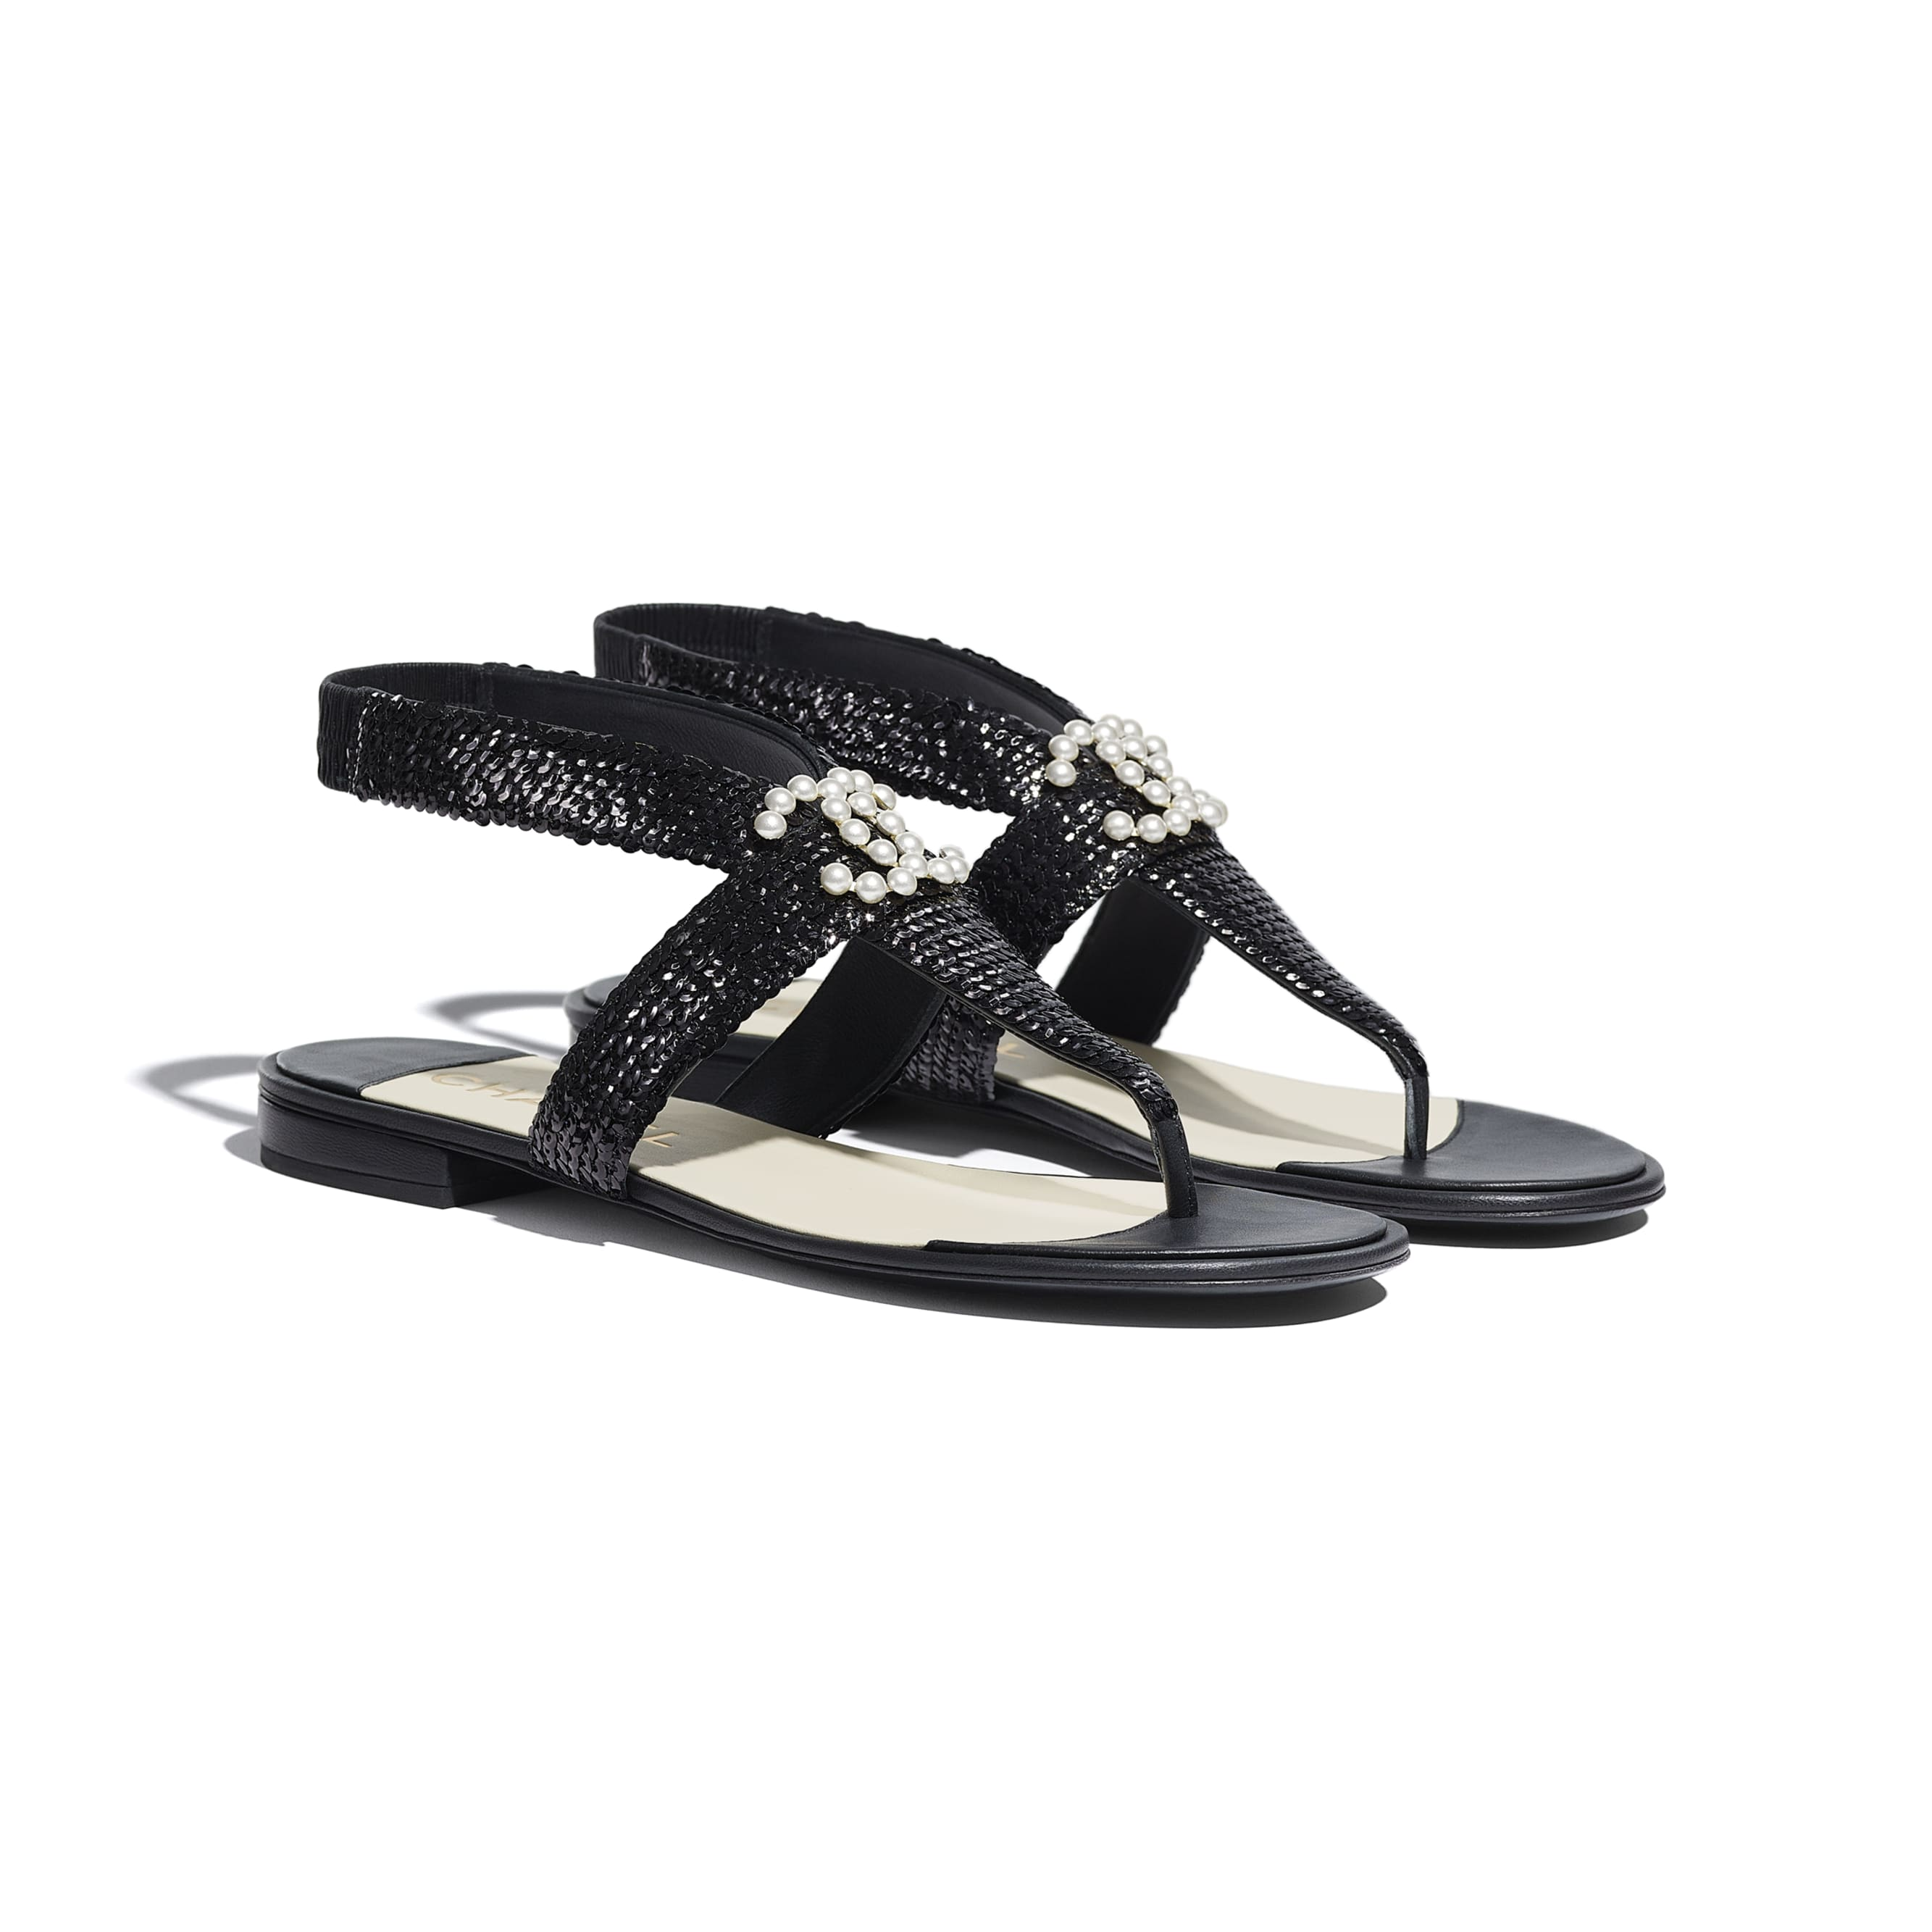 Sandals - Black - Lambskin & Sequins - CHANEL - Alternative view - see standard sized version